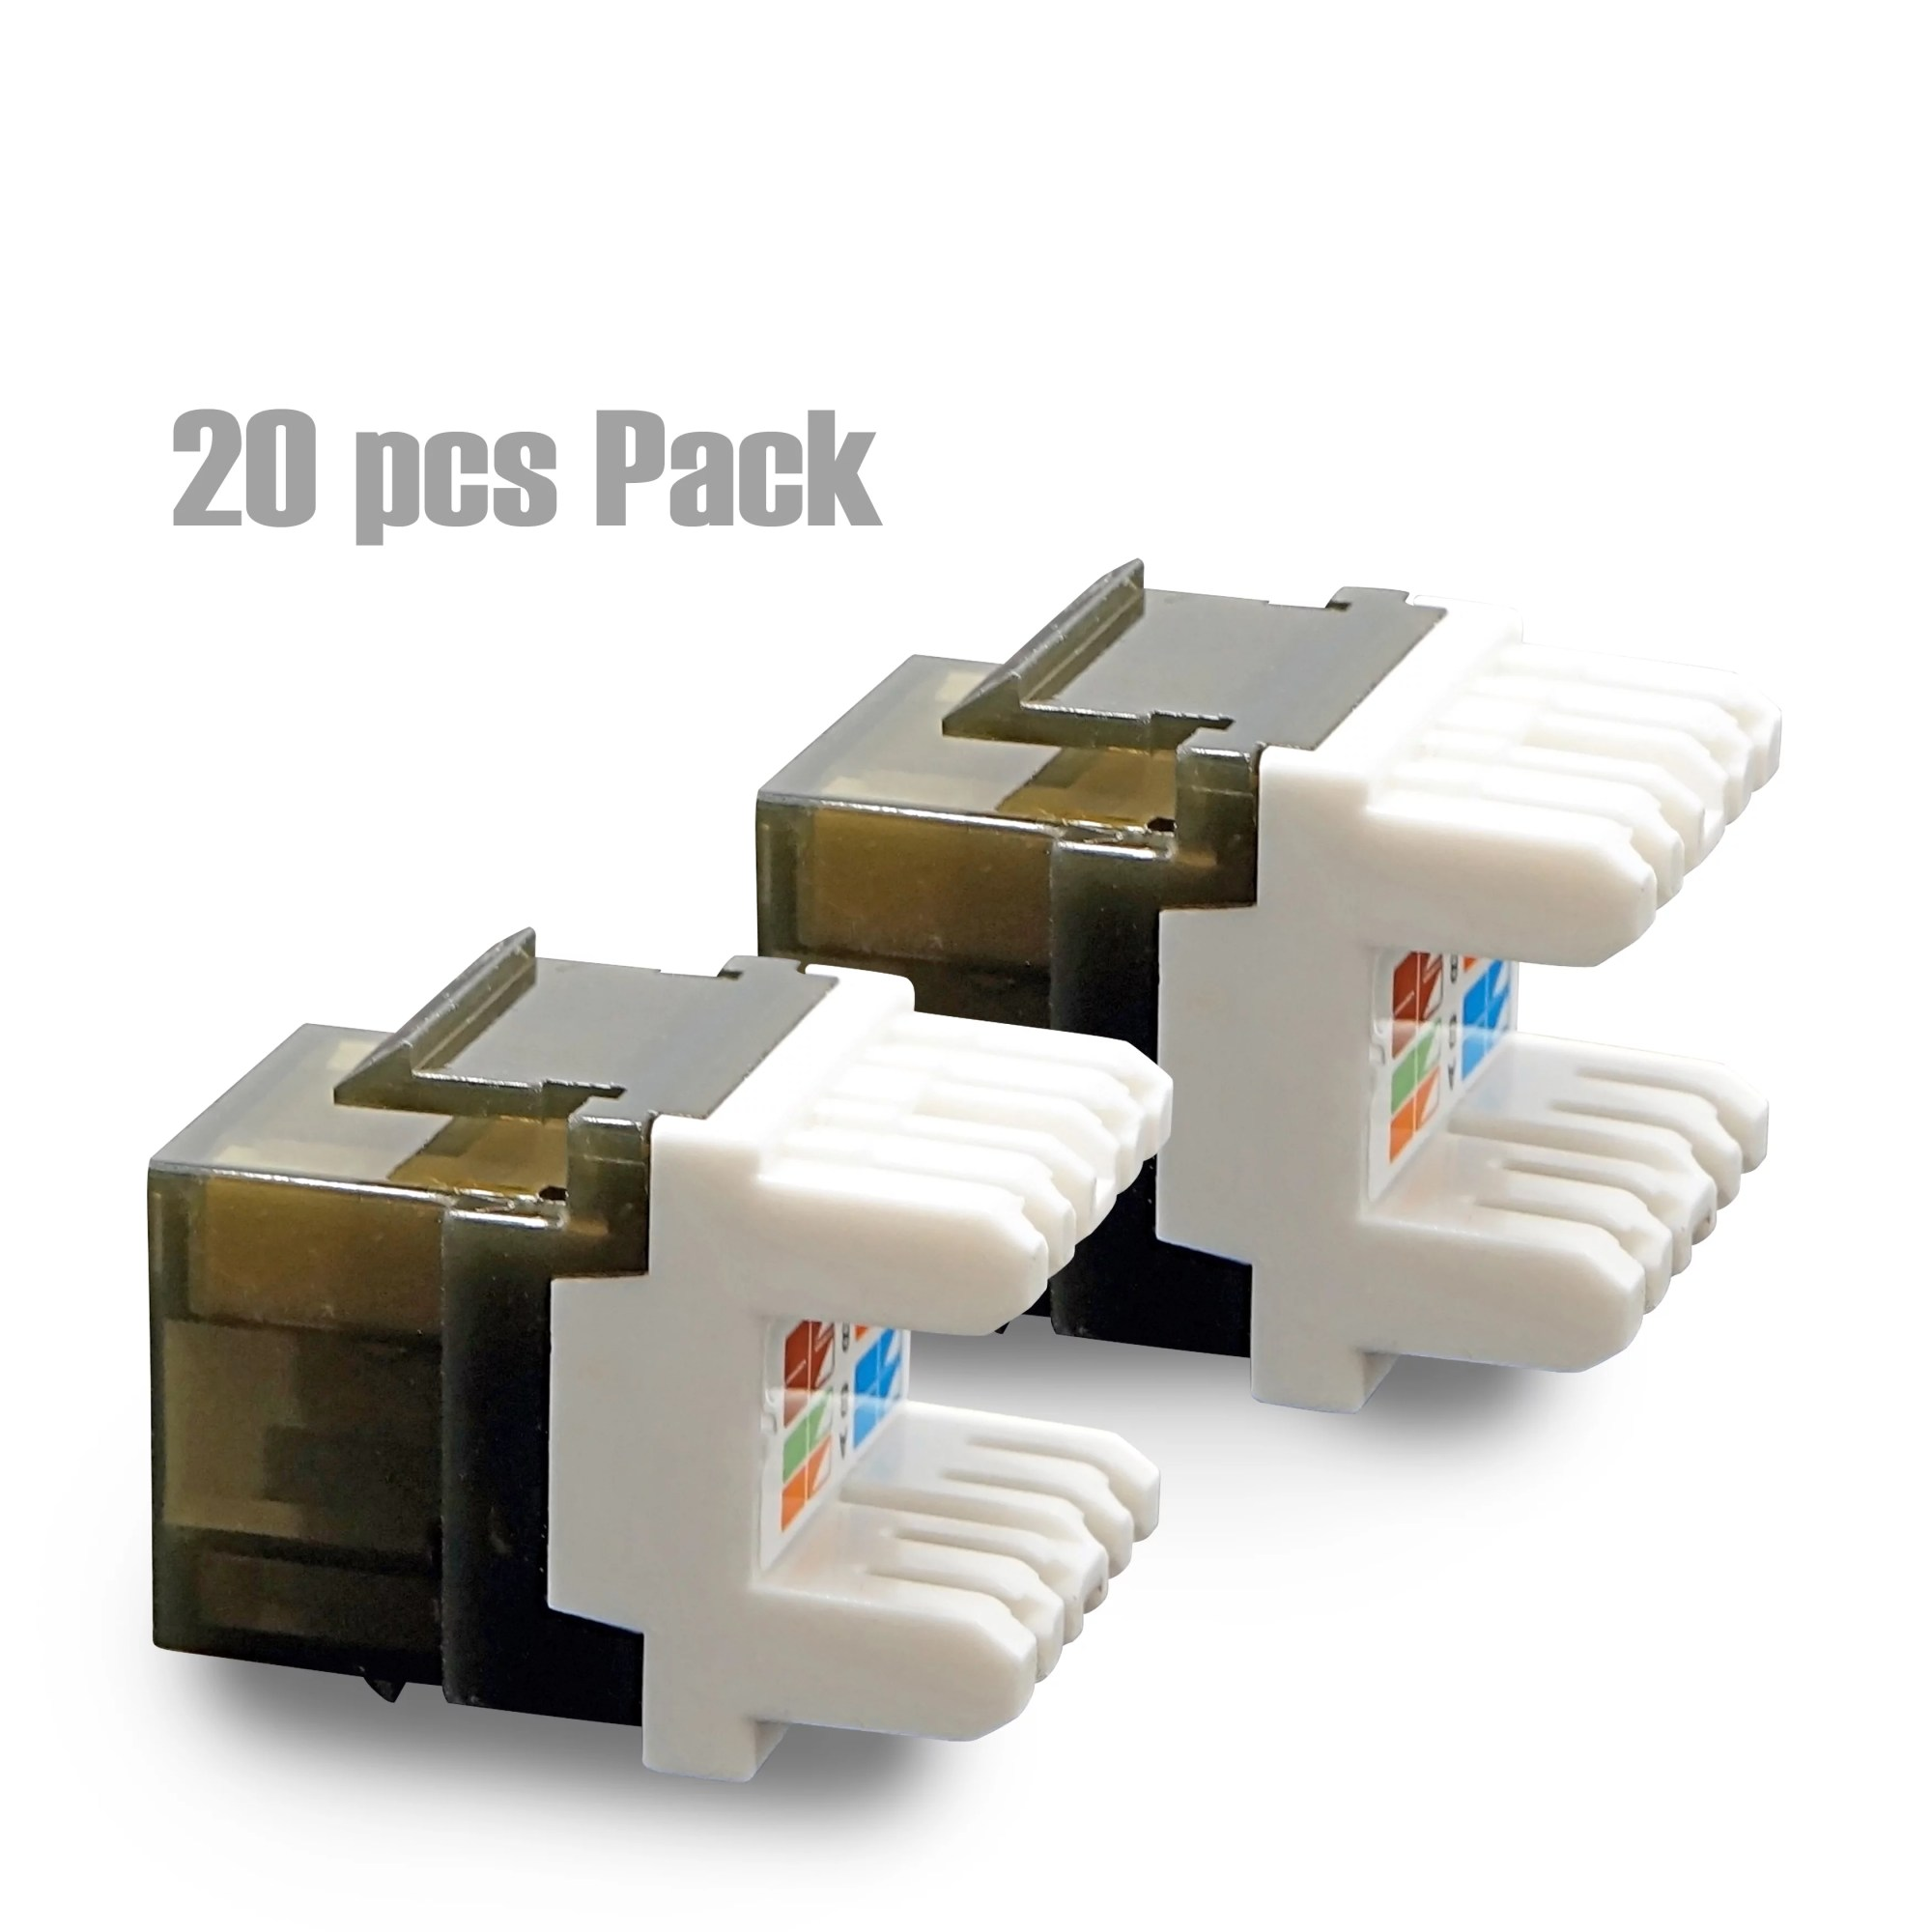 hight resolution of cybertech utp cat 6a cat 6 cat 5e keystone jack with led 20 pack walmart com